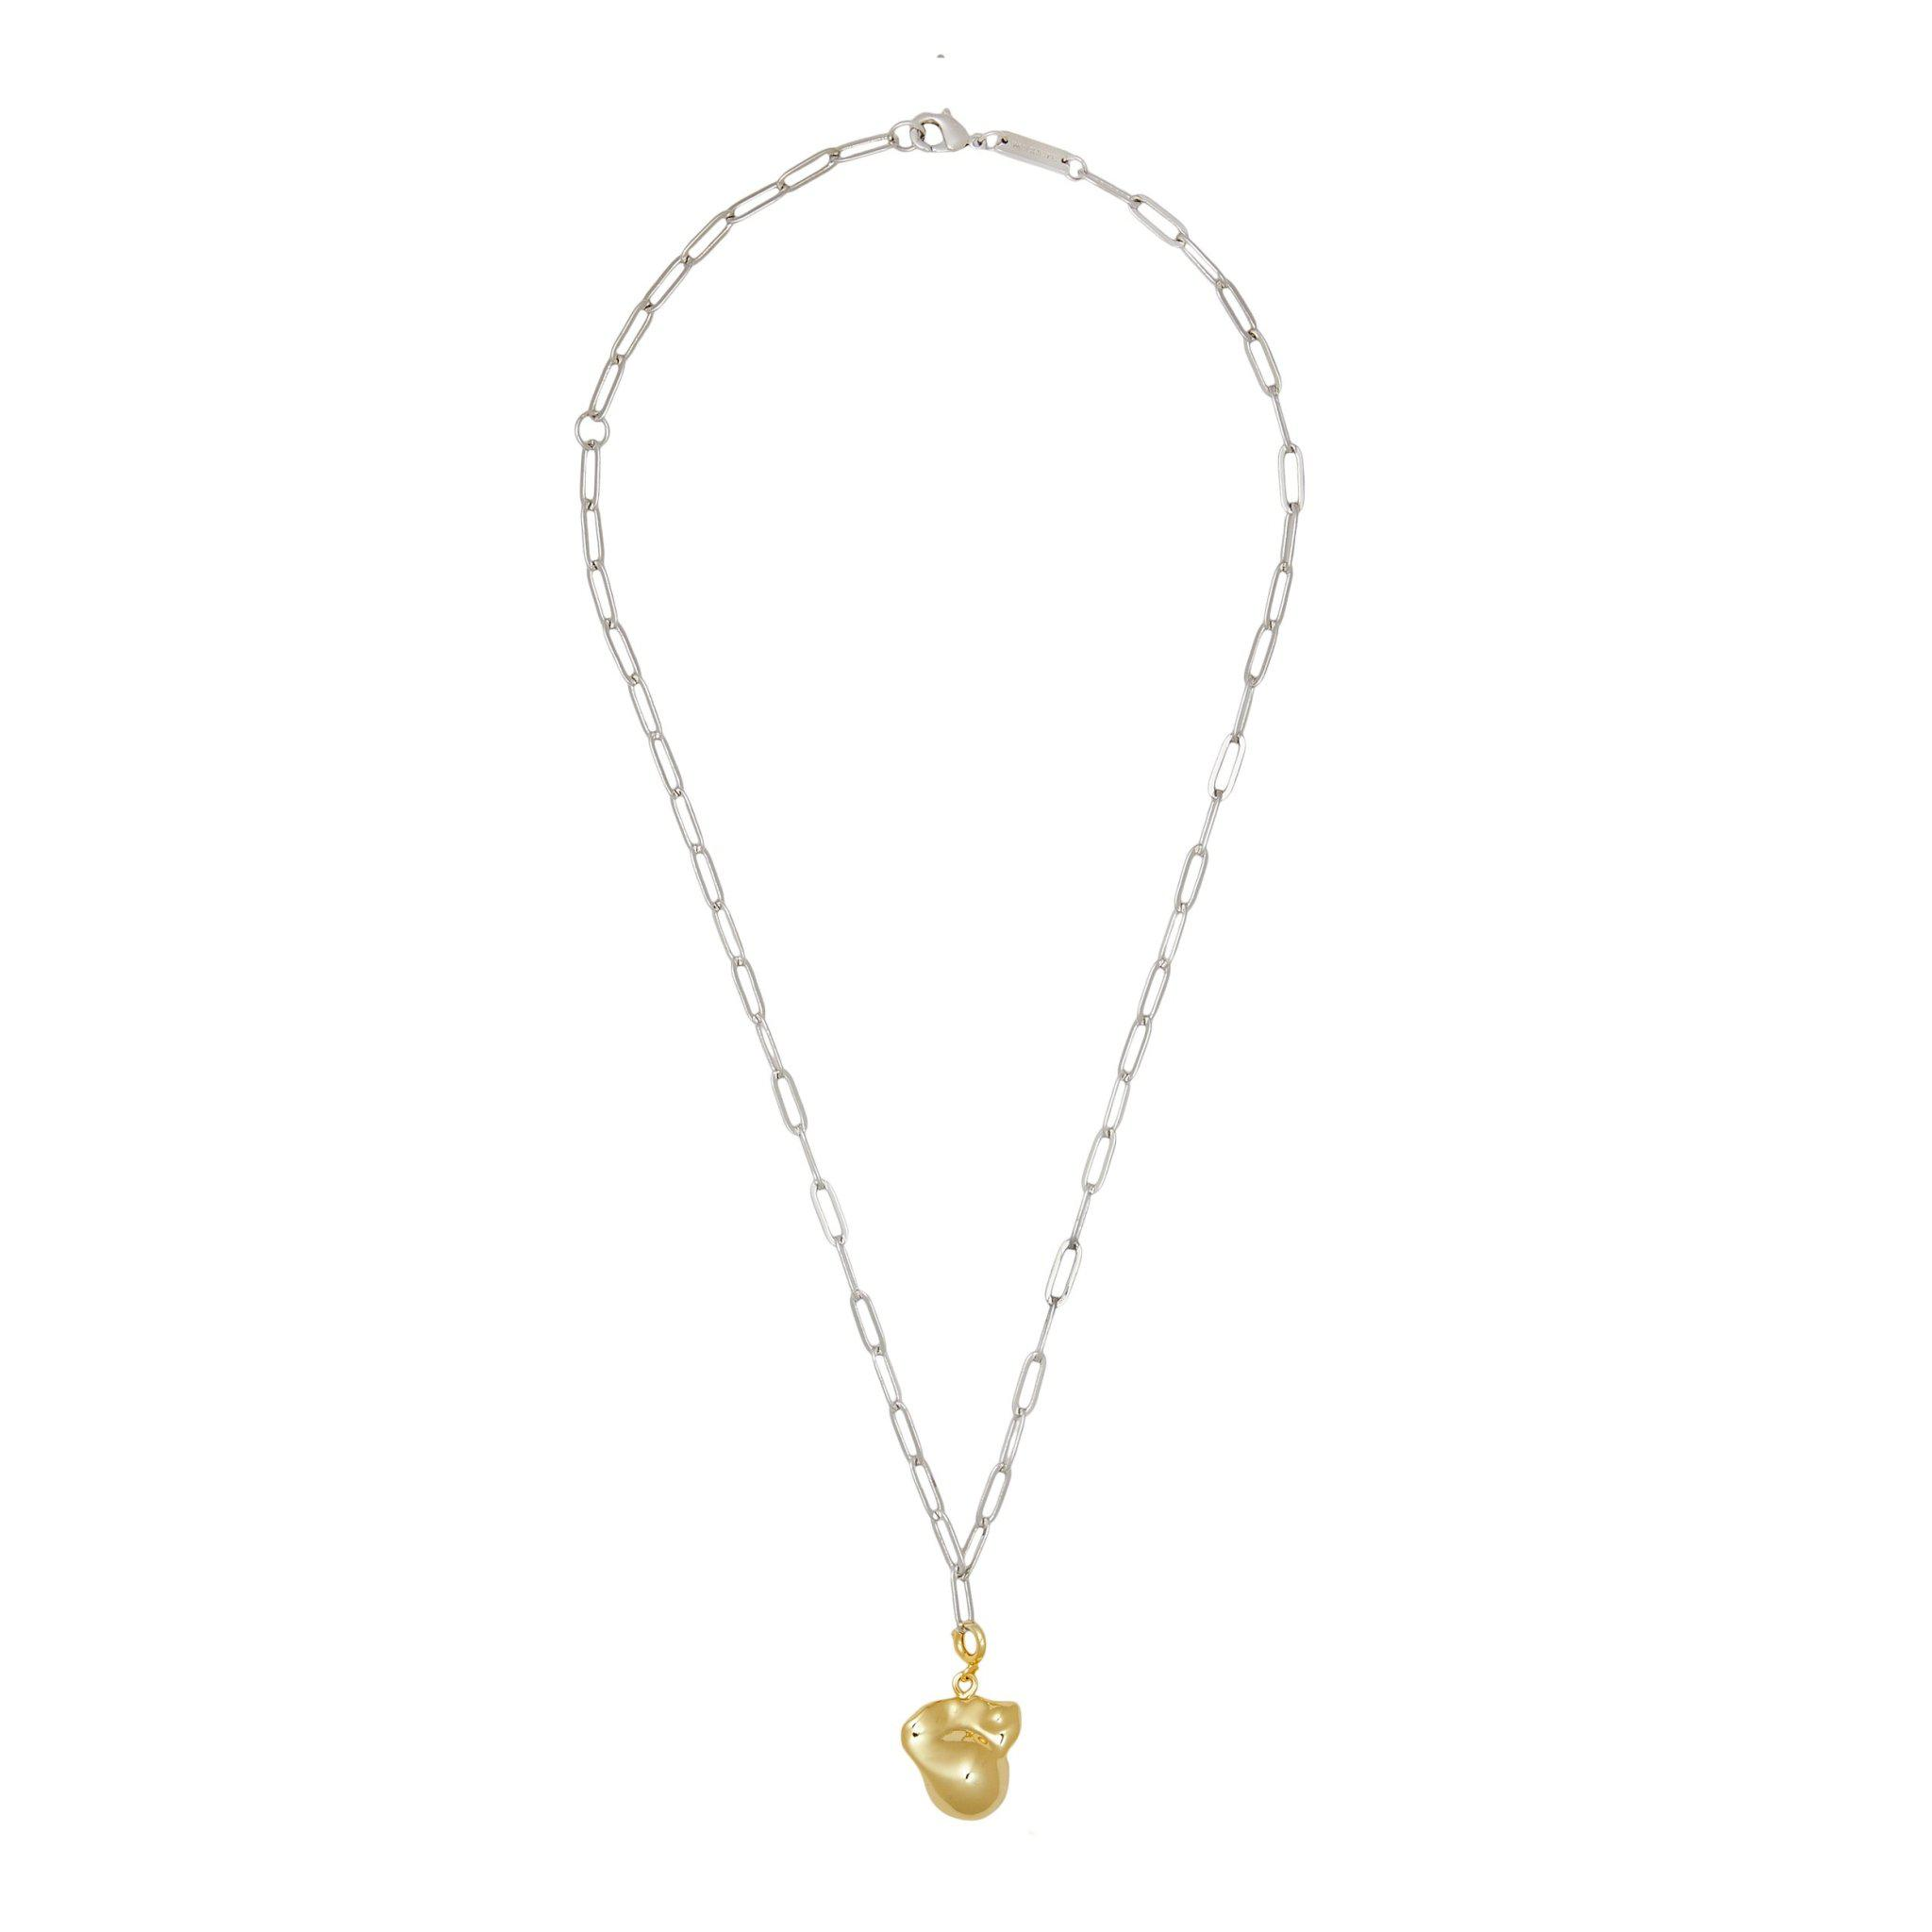 Pearl & Petite Paperclip Chain Pendant Necklace in Silver & Gold